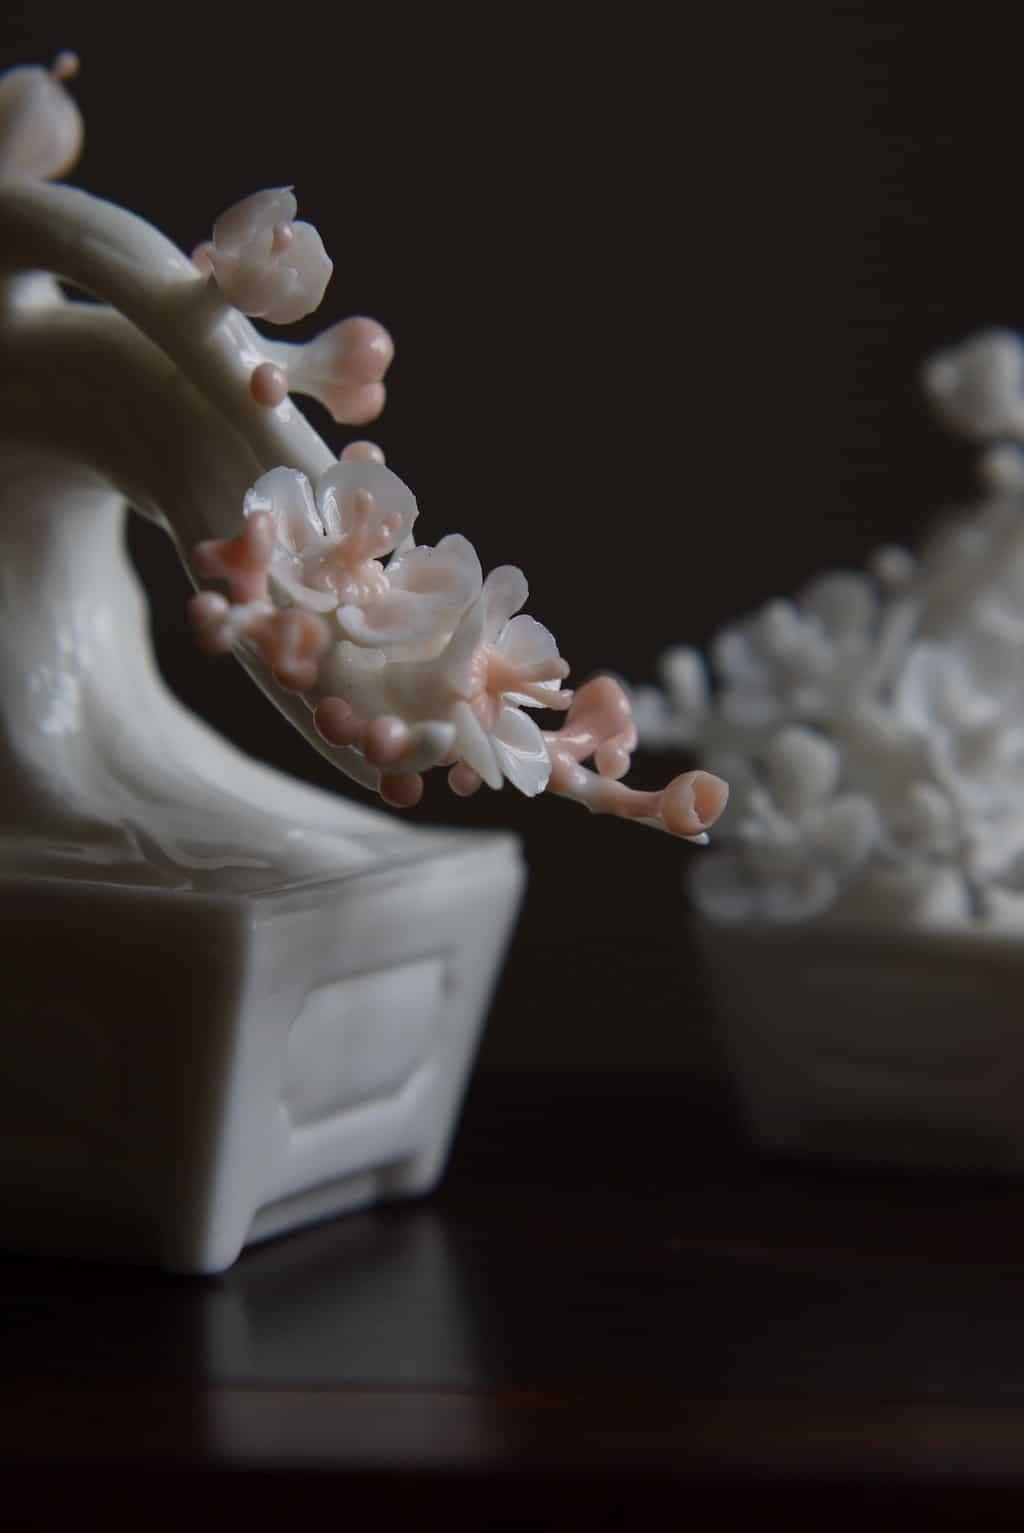 Chinese Plum Flower Sculpture For Tea Table Room | BestCeramics